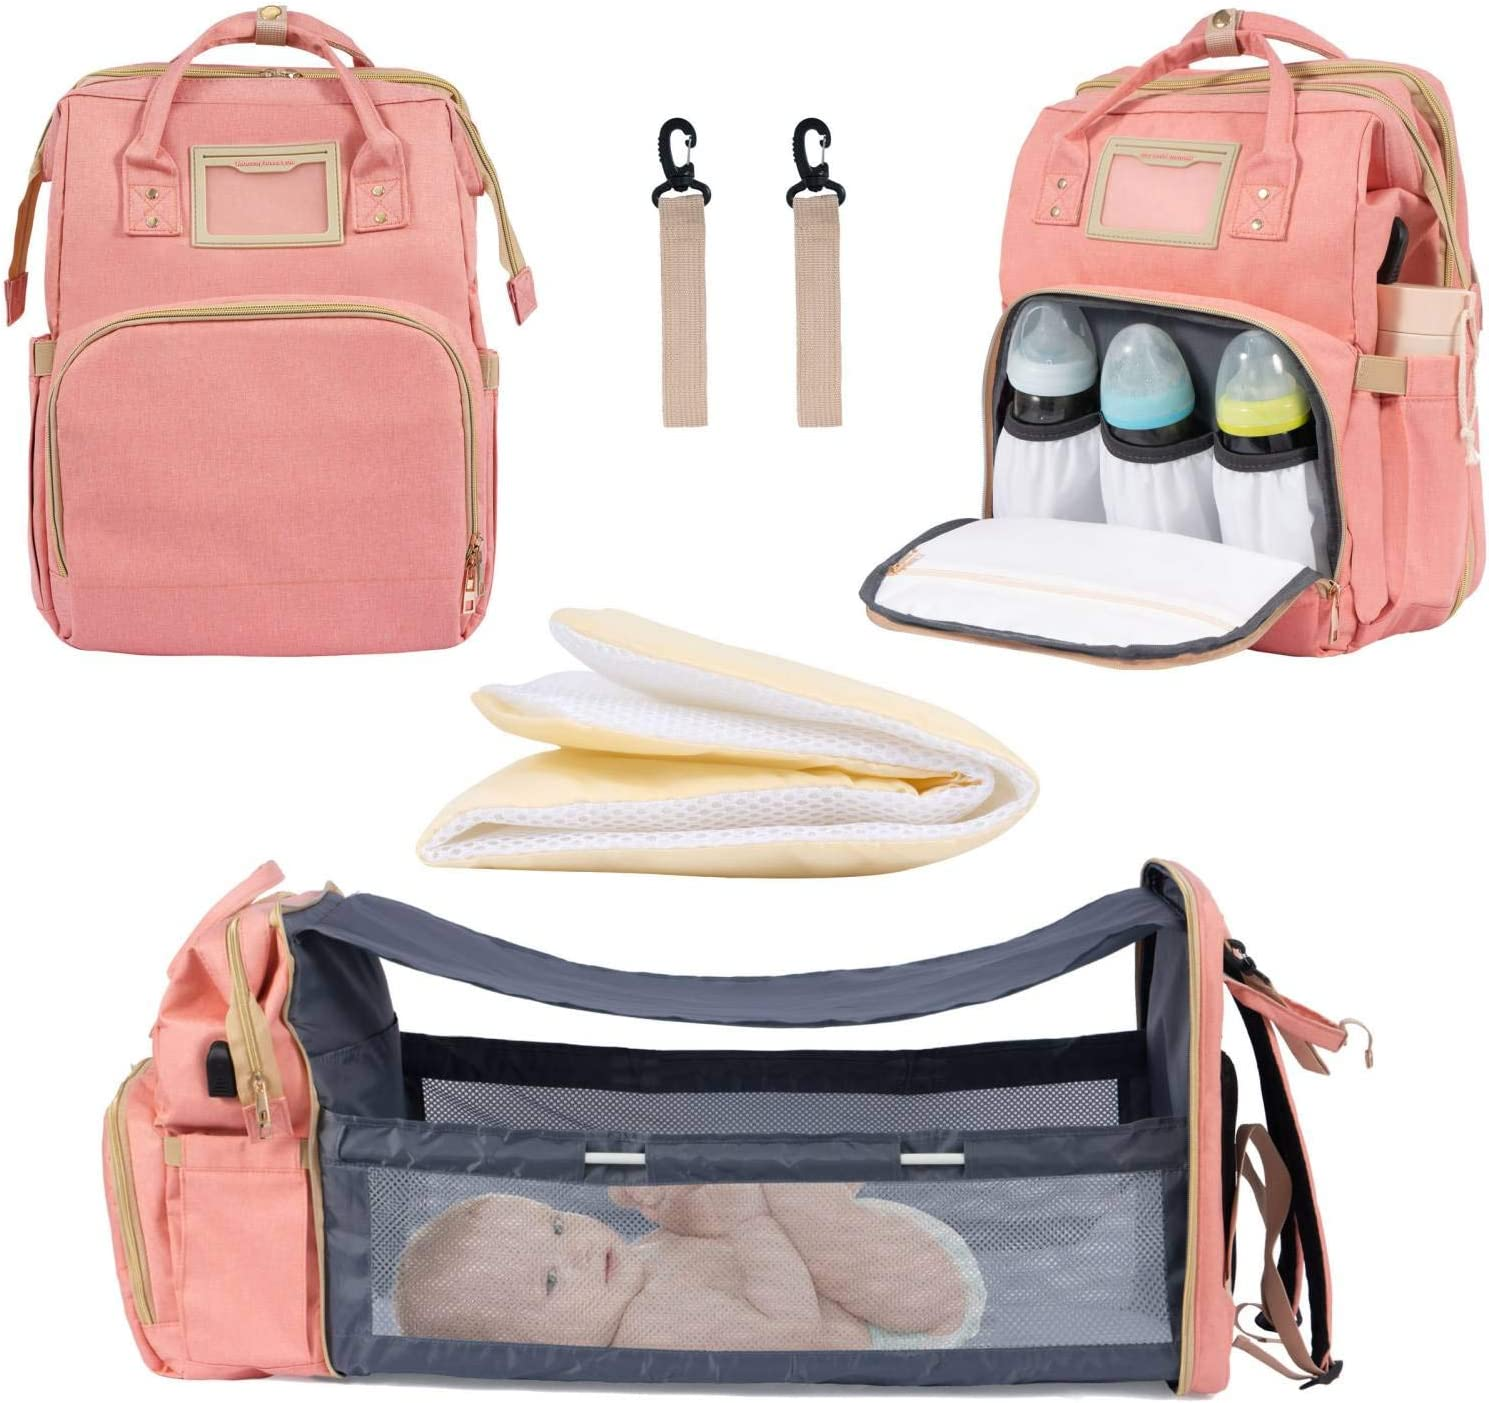 Diaper Bag Backpack with Bassinet, Pink Baby Bags for Mom, Portable Baby Diaper Changing Bed with USB Charging Port